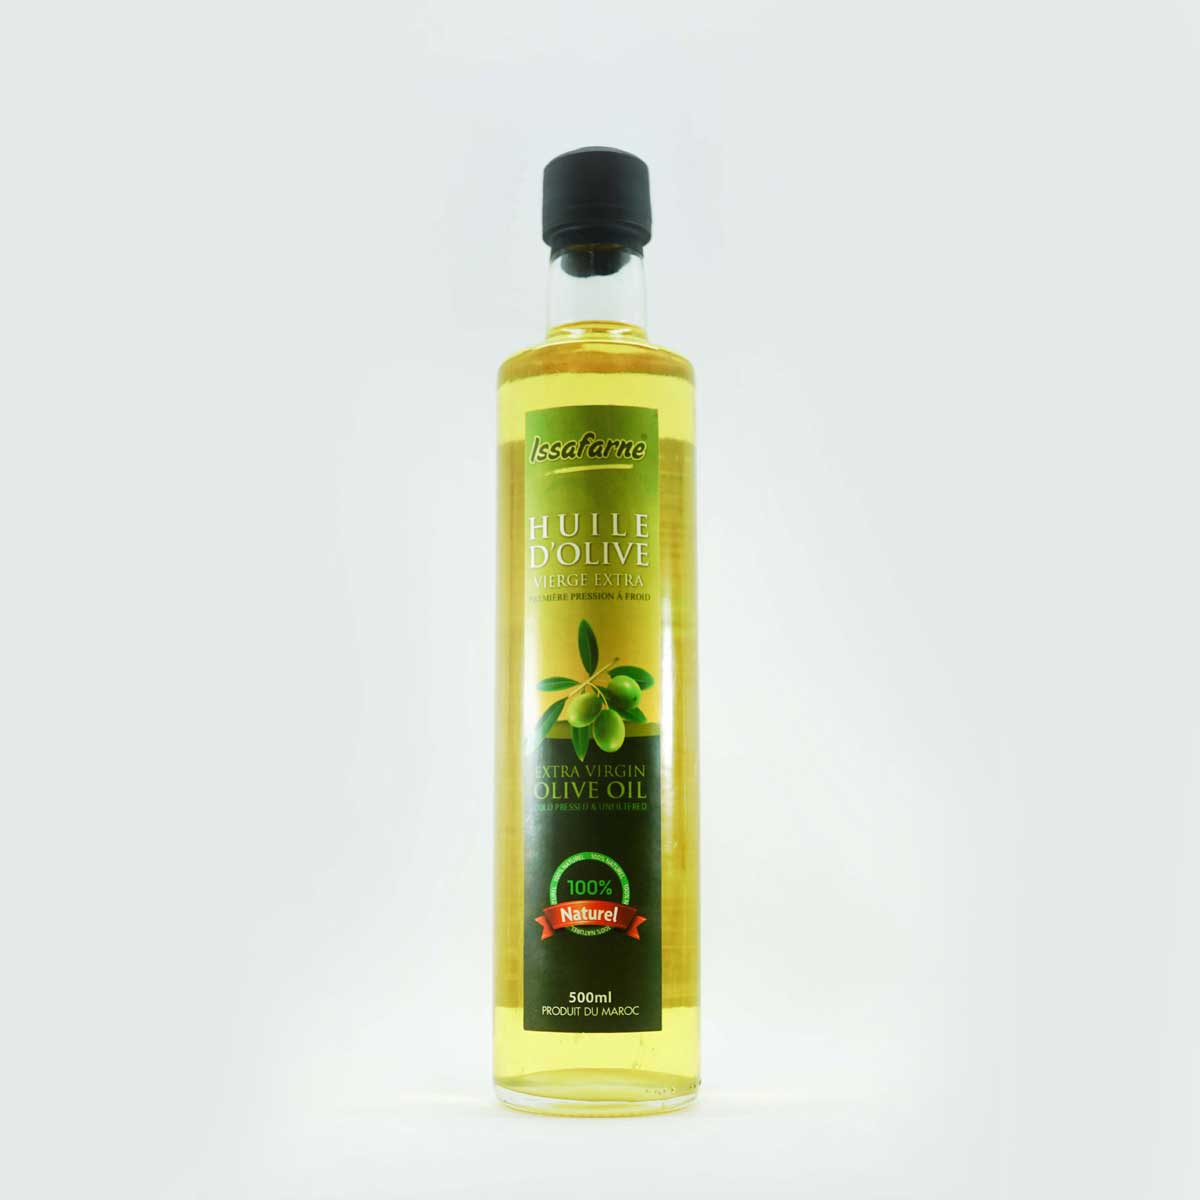 HUILE D'OLIVE VIERGE 500ML